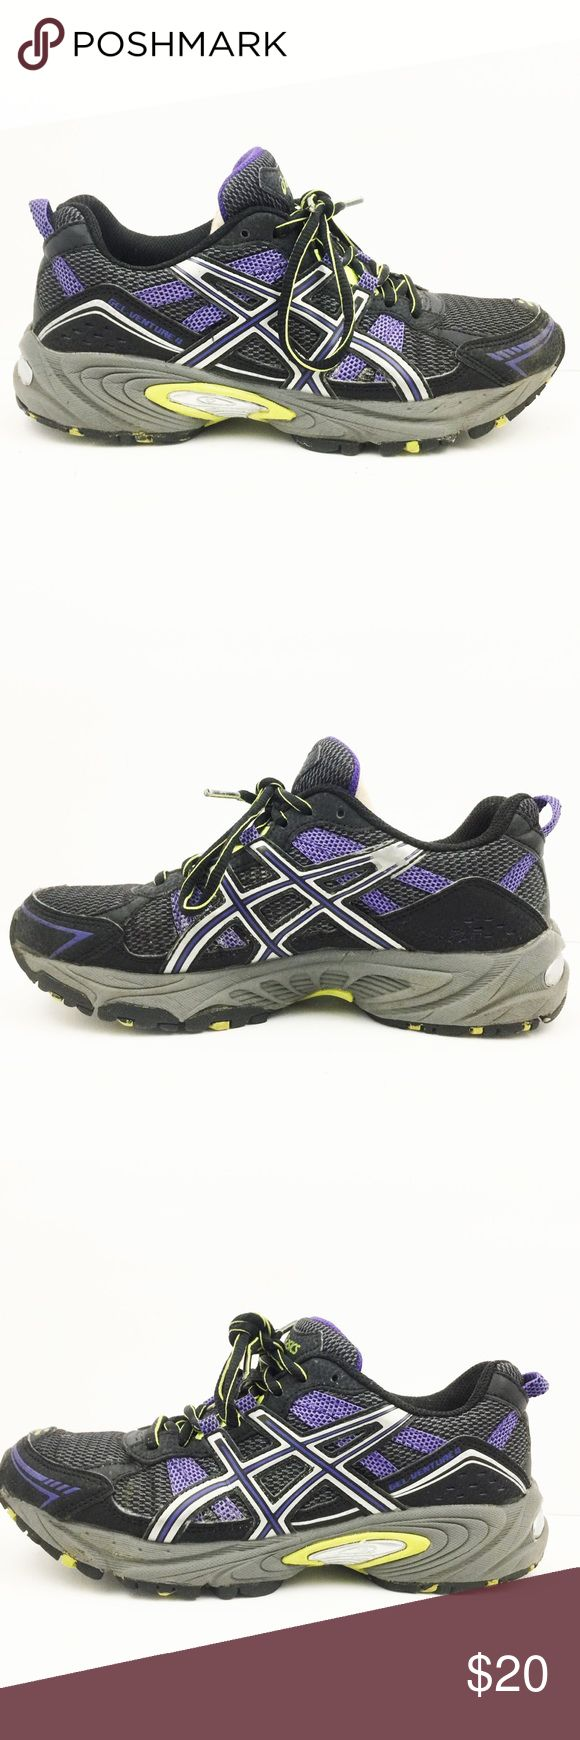 ASIC Gel Venture 4 Women's Running Shoes ASIC Gel Venture 4 Women's Running Training Shoes. Gray, Purple, Black. Asics Shoes Athletic Shoes